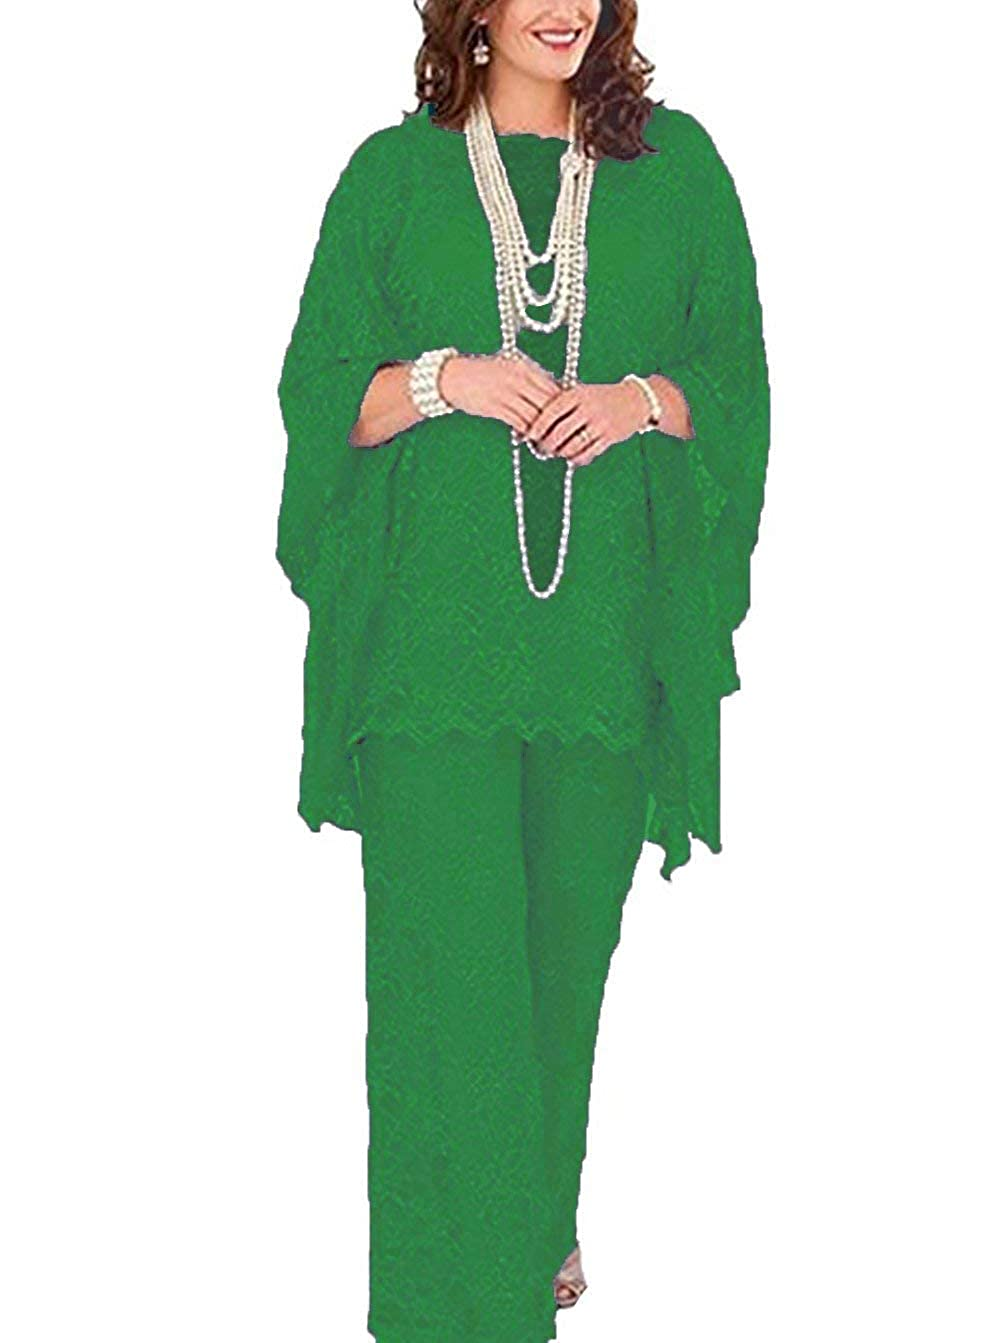 Green Women's 3 Pieces lace Mother of Bride Dress Pant Suits Long Sleeves